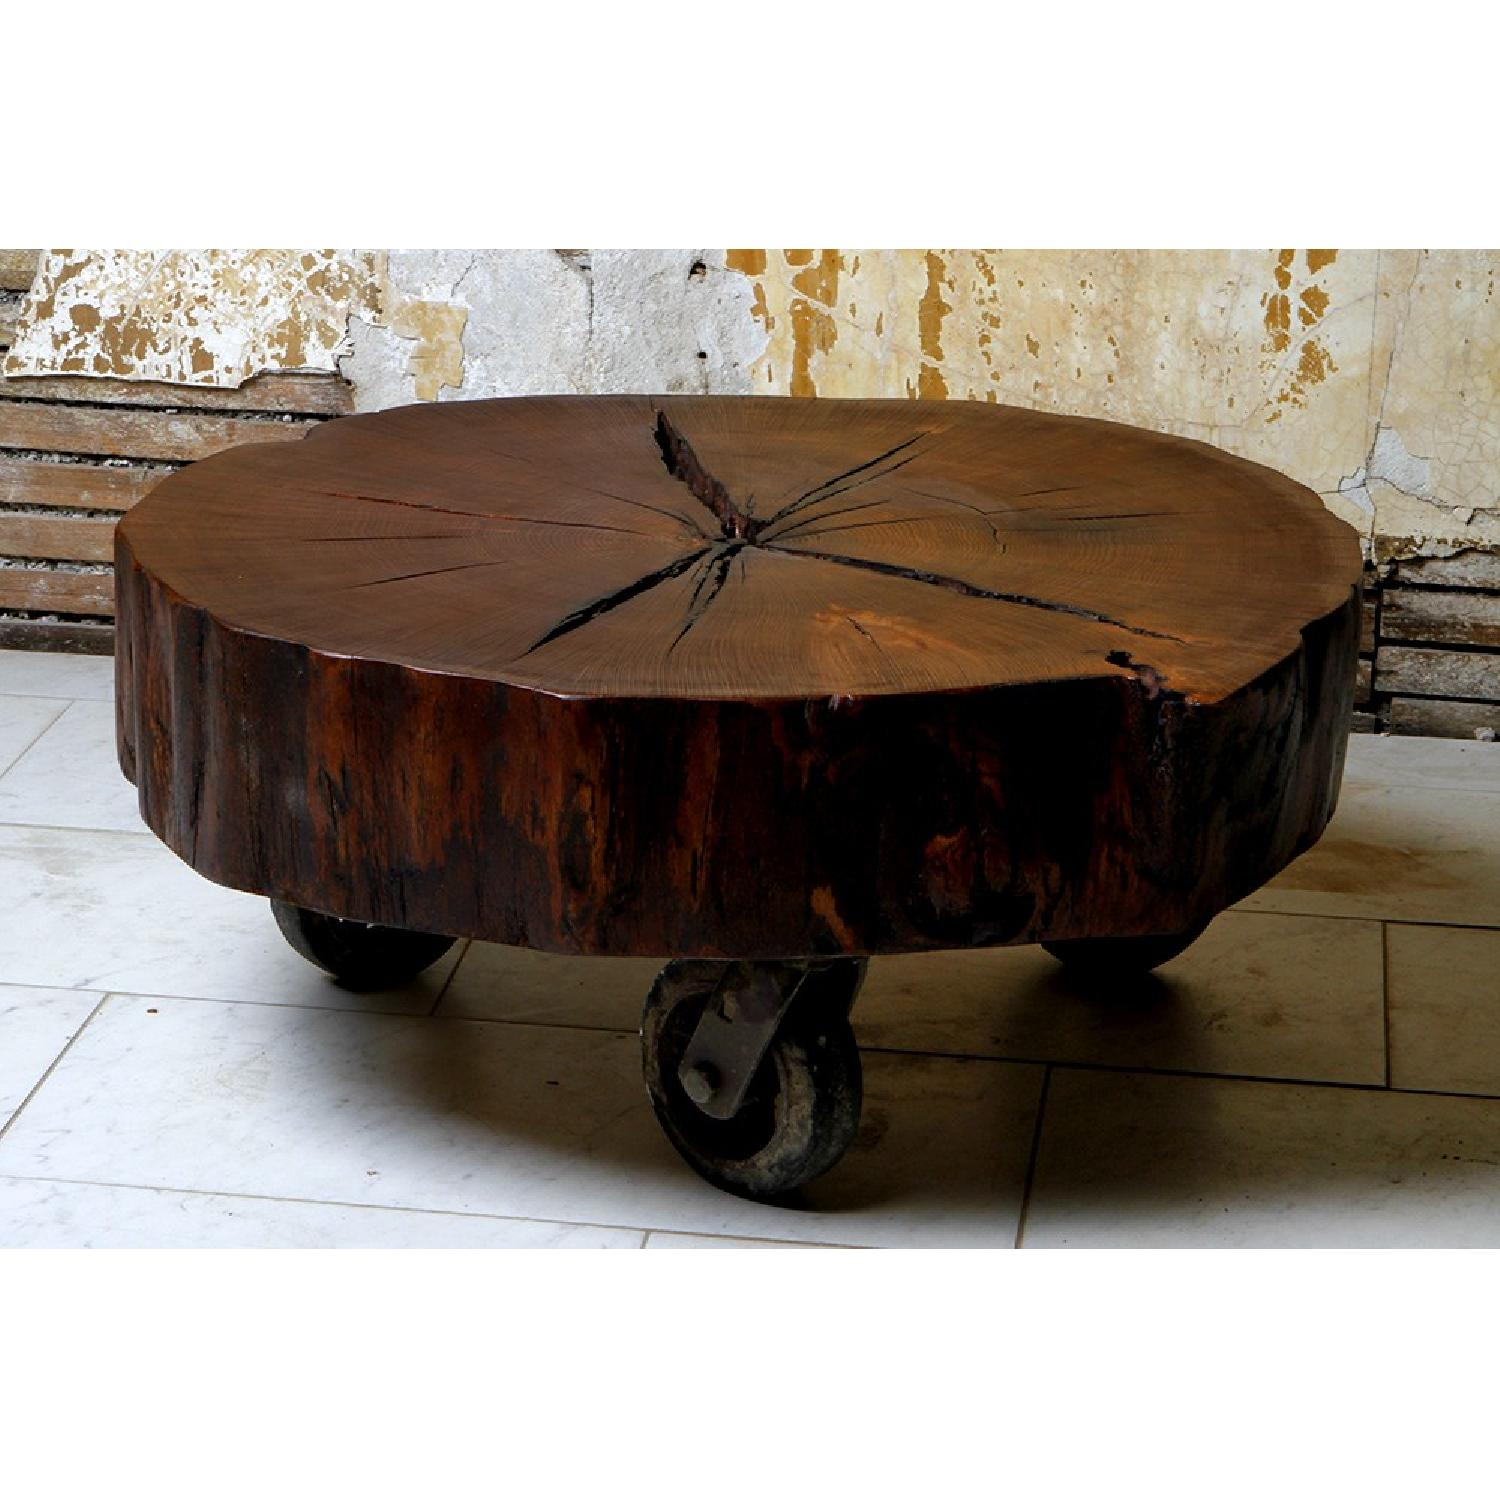 Reclaimed Oak Tree Trunk Table on Reclaimed Industrial Casters - image-1